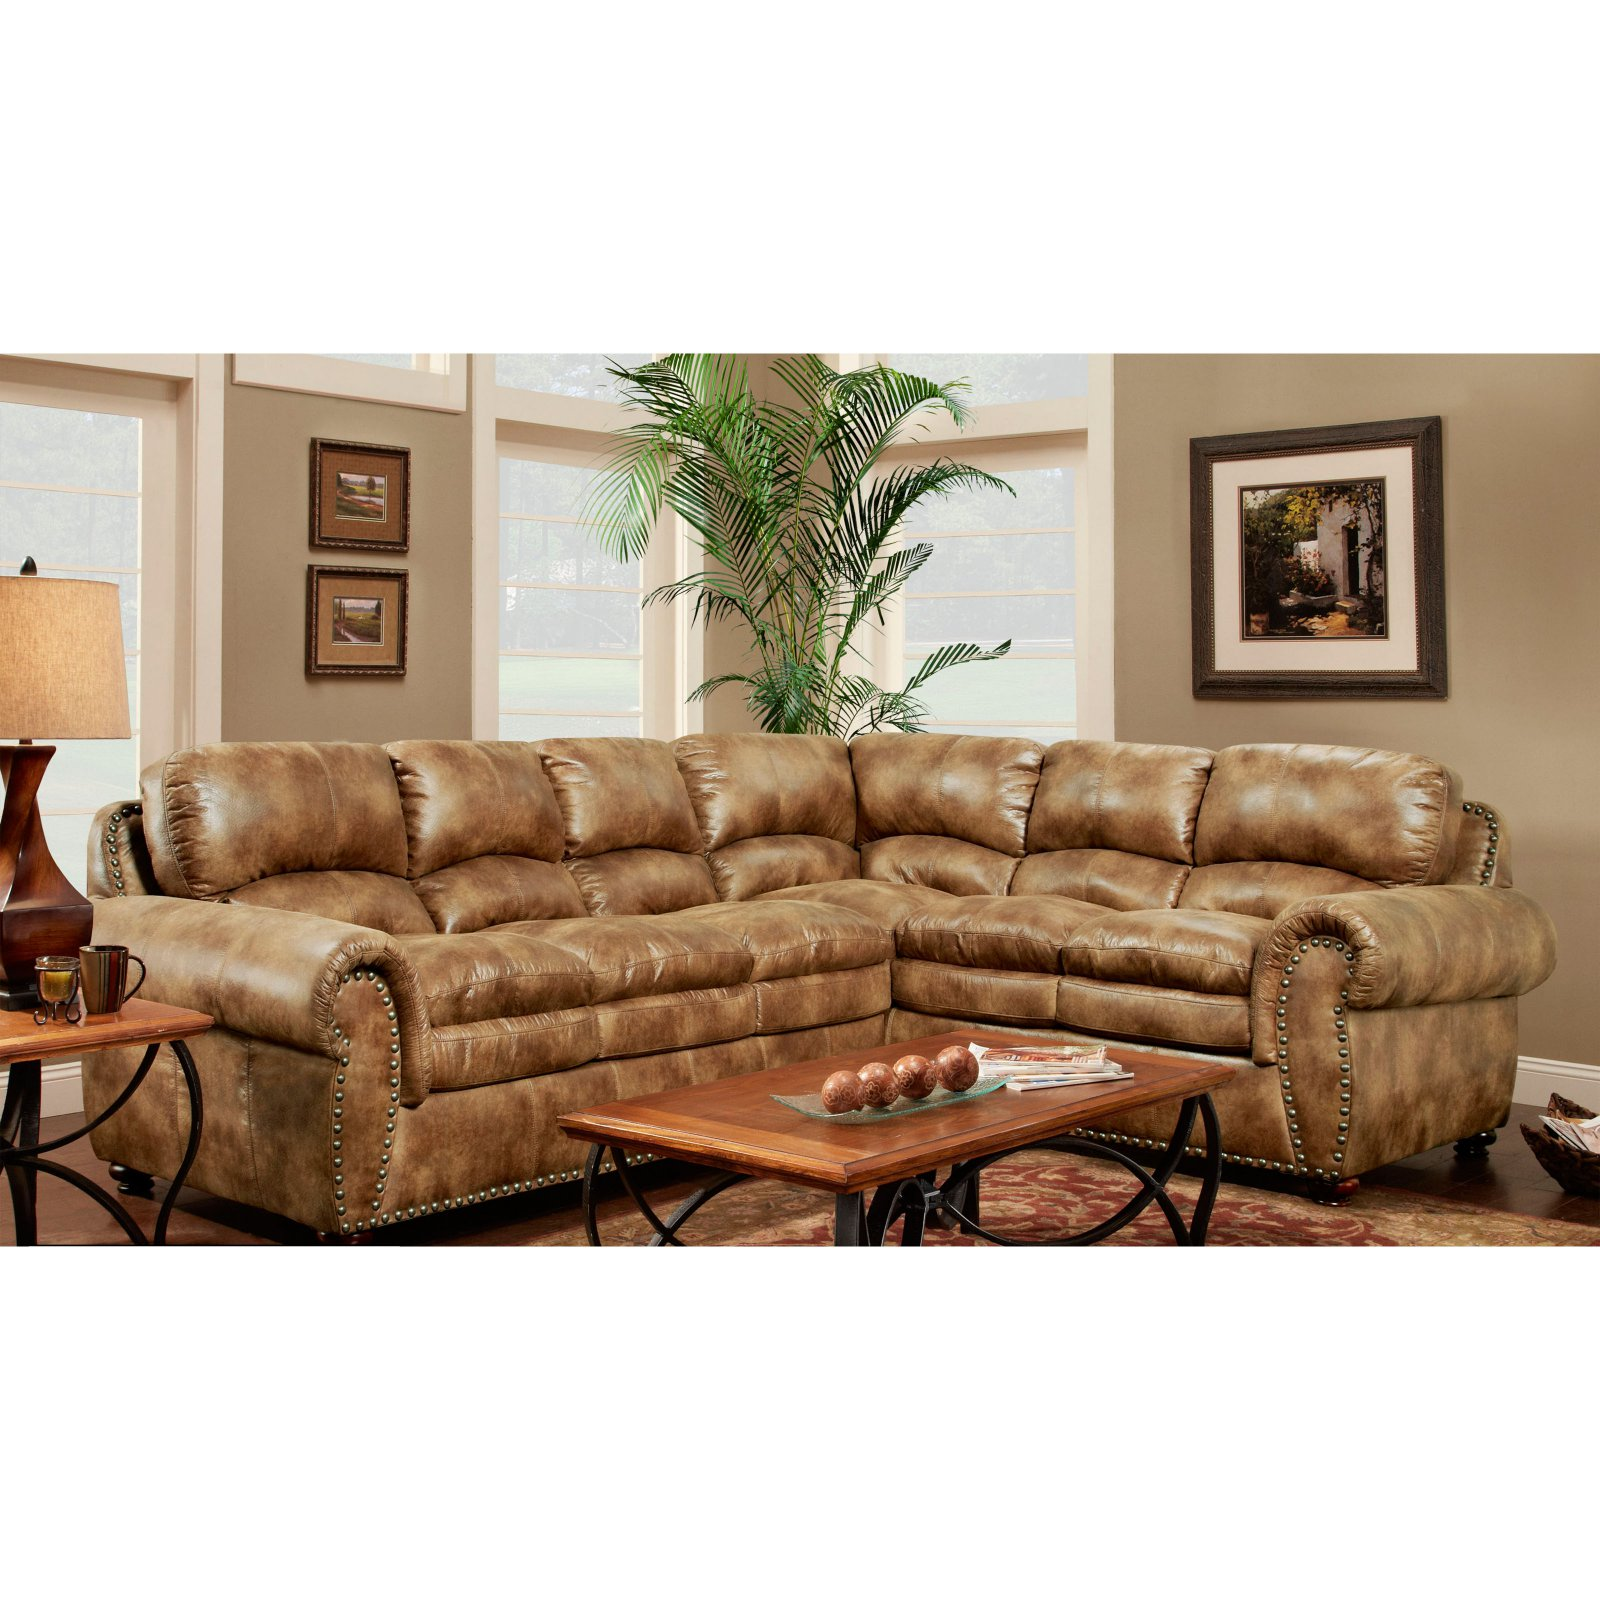 Chelsea Home Santa Fe Sectional